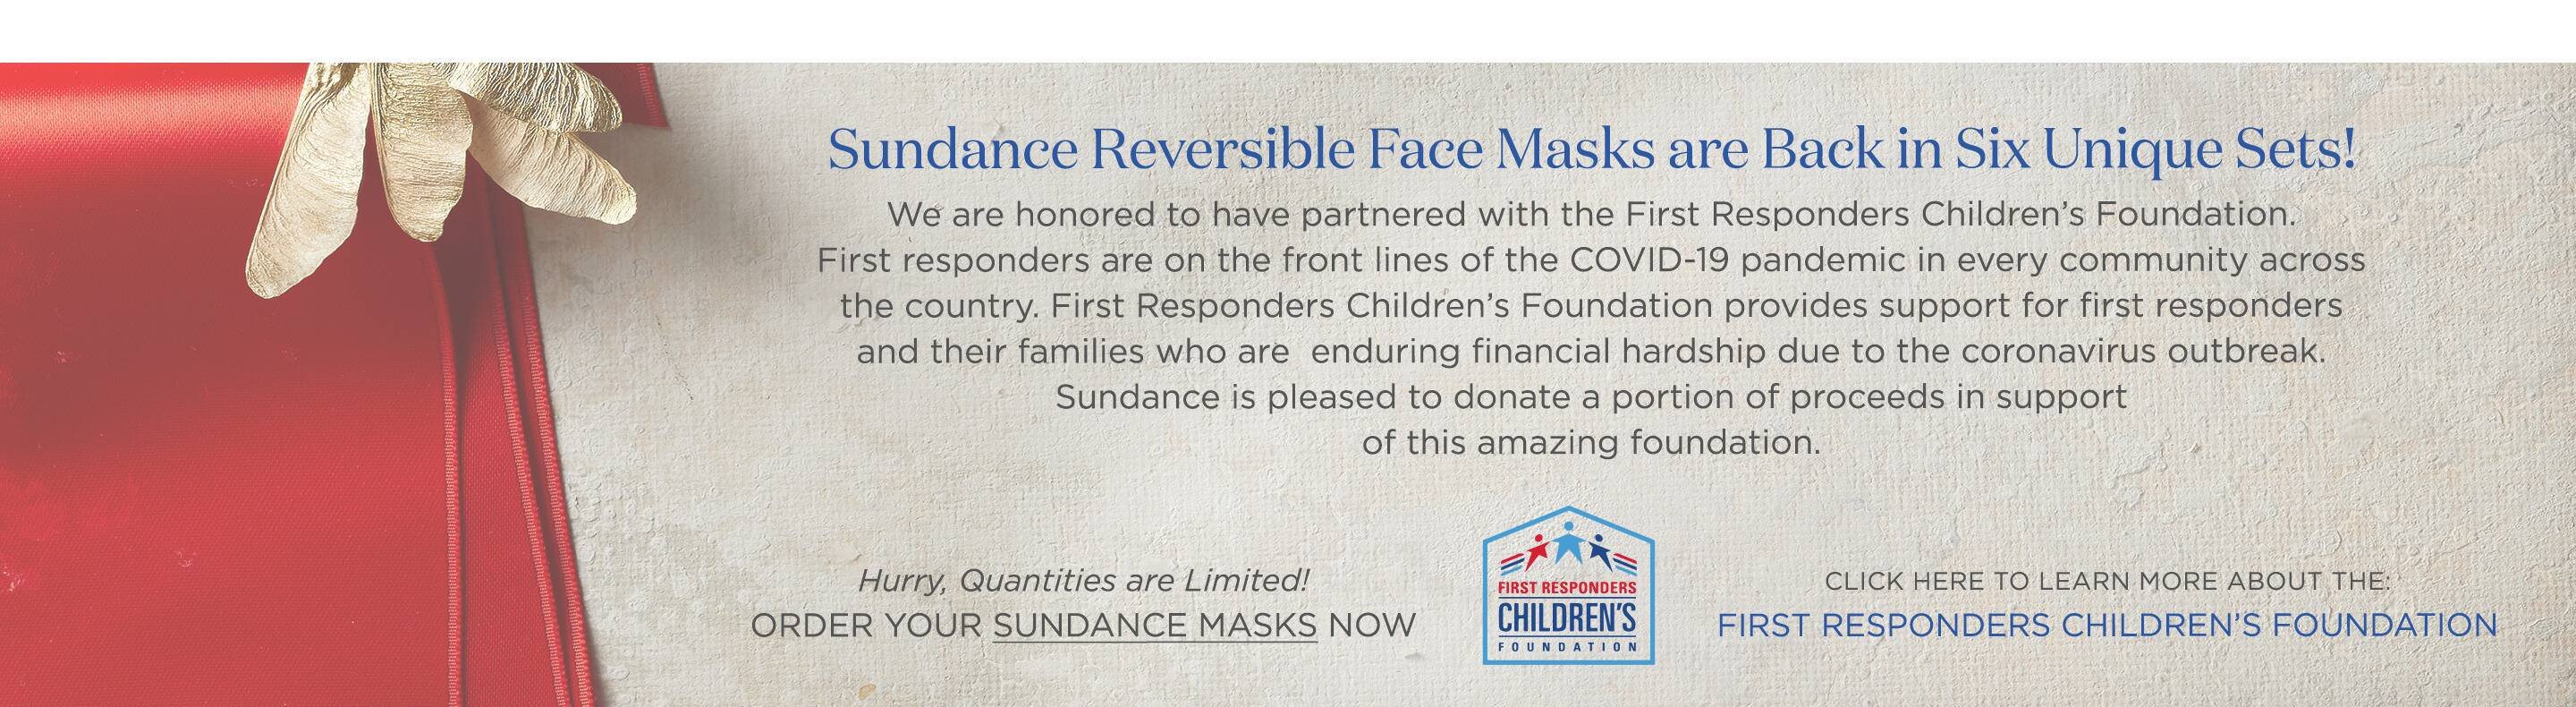 Reversible Masks are Back